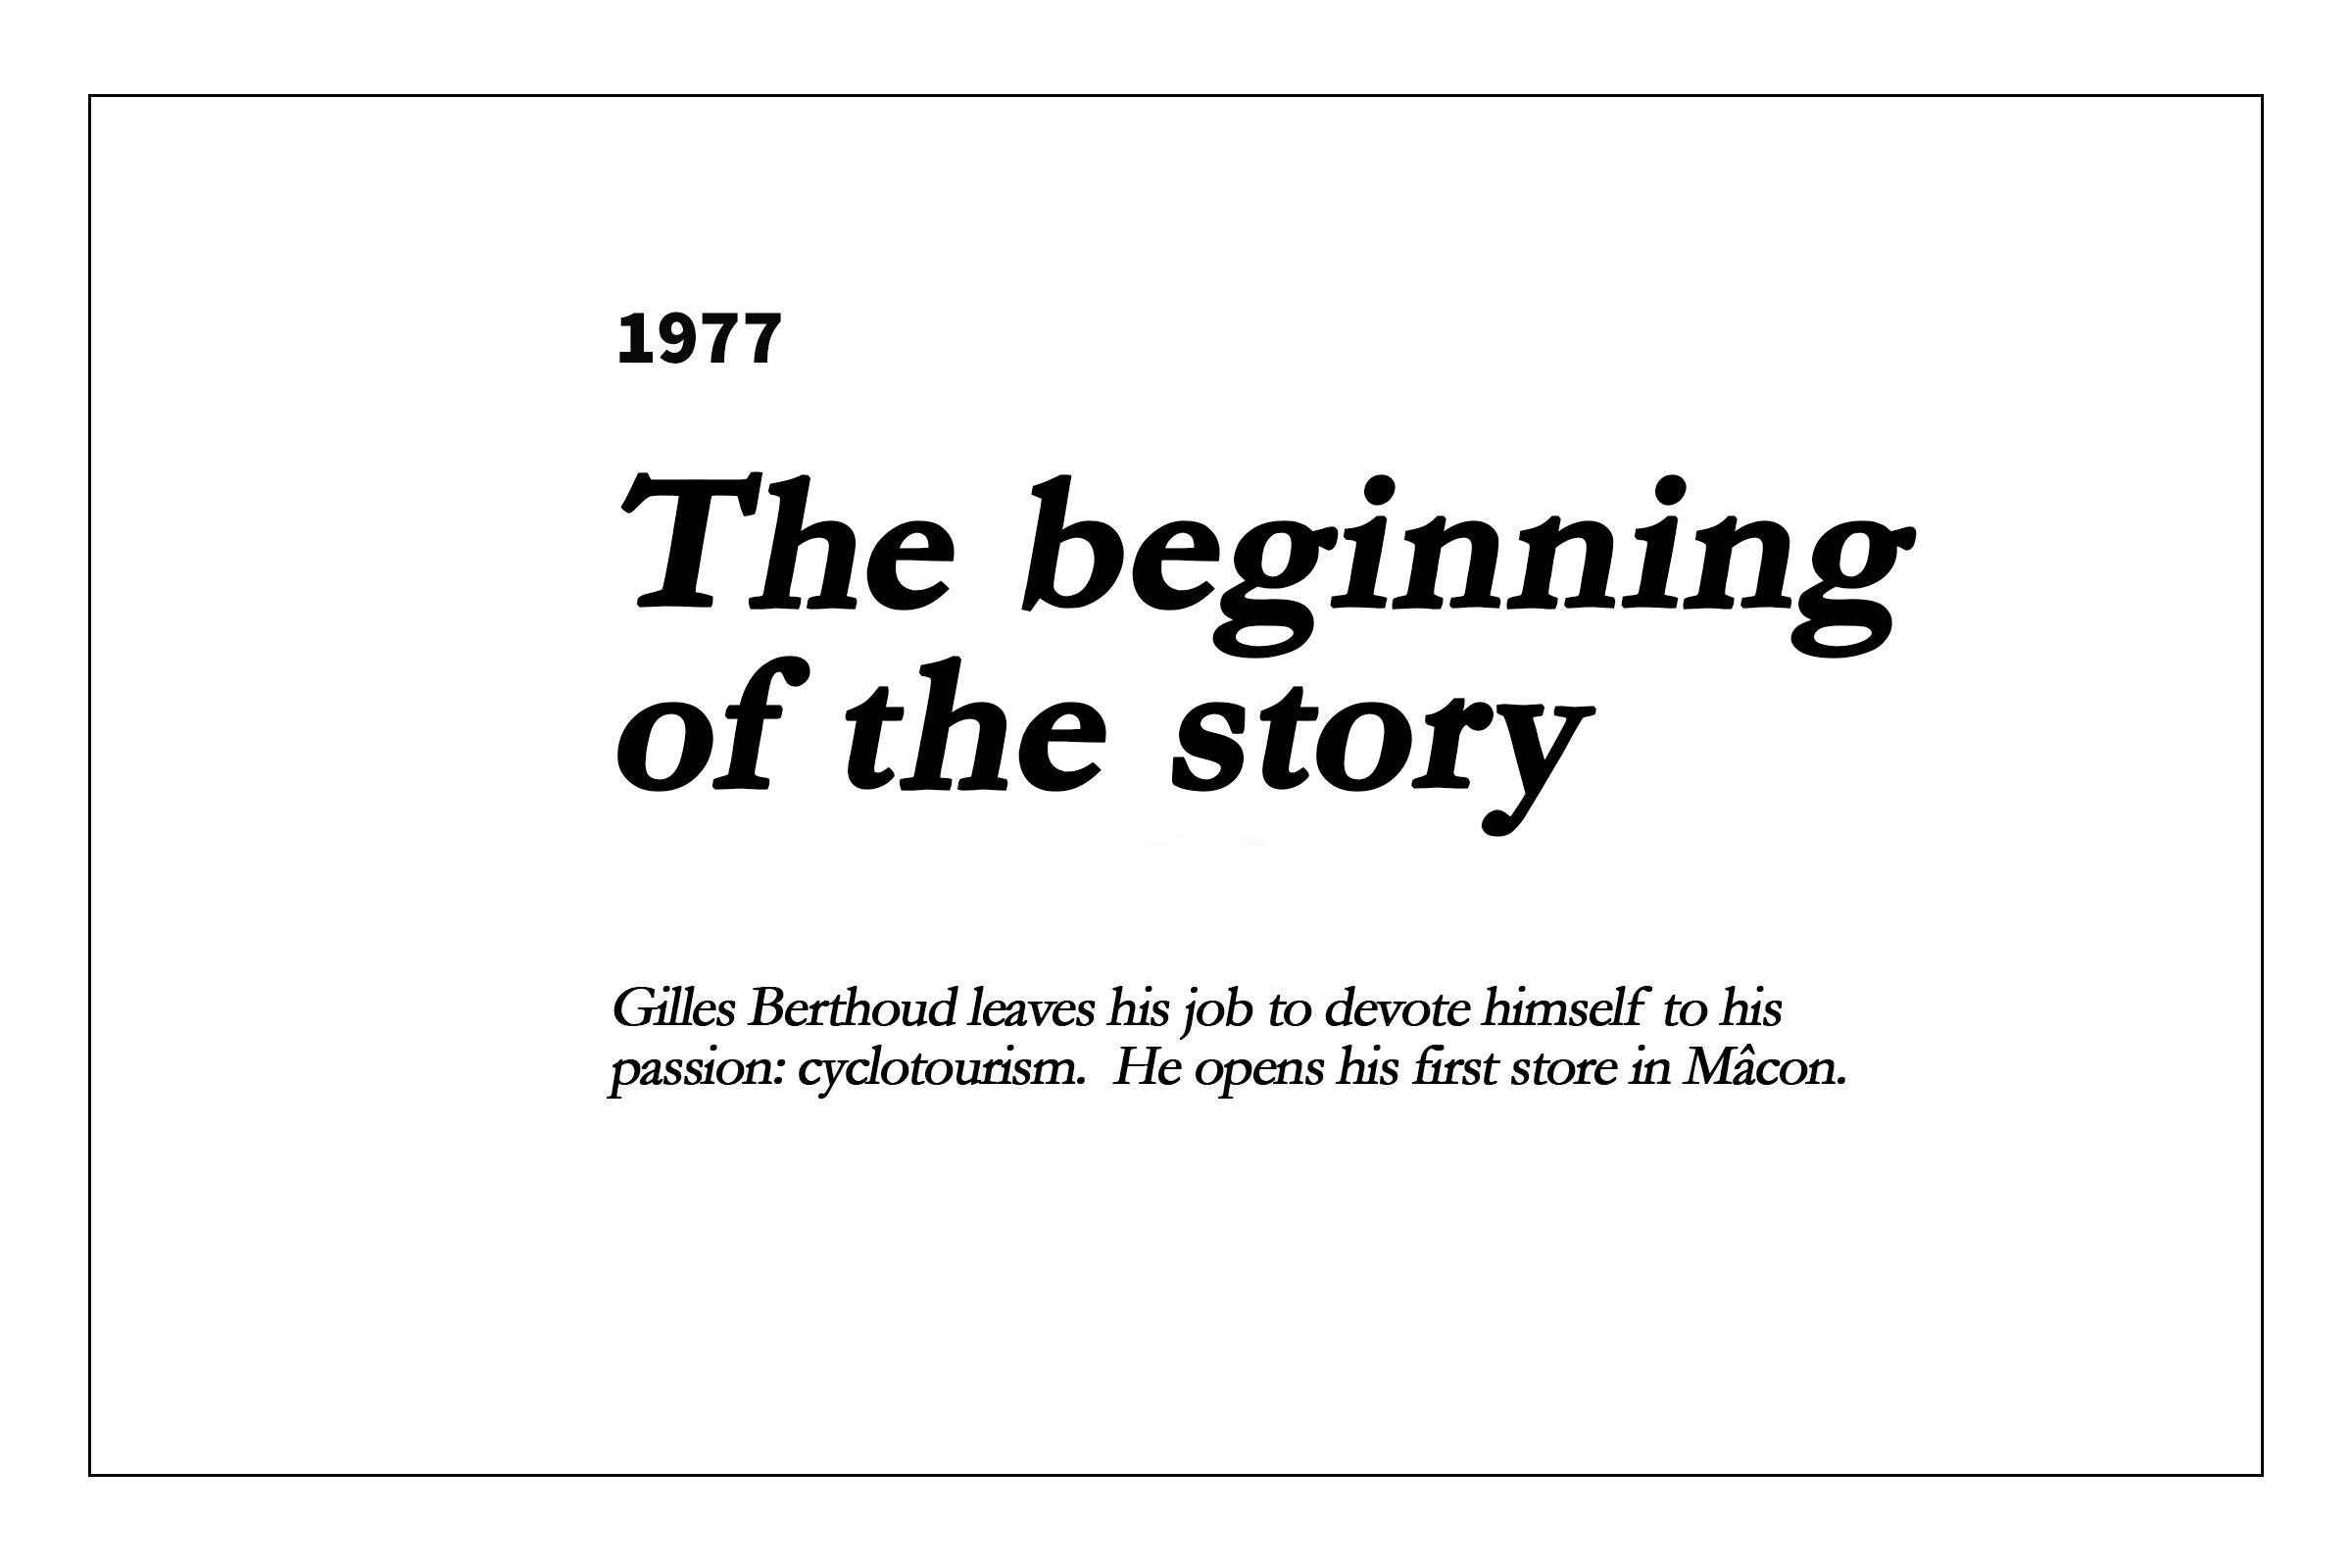 1977 - The begininning of the story